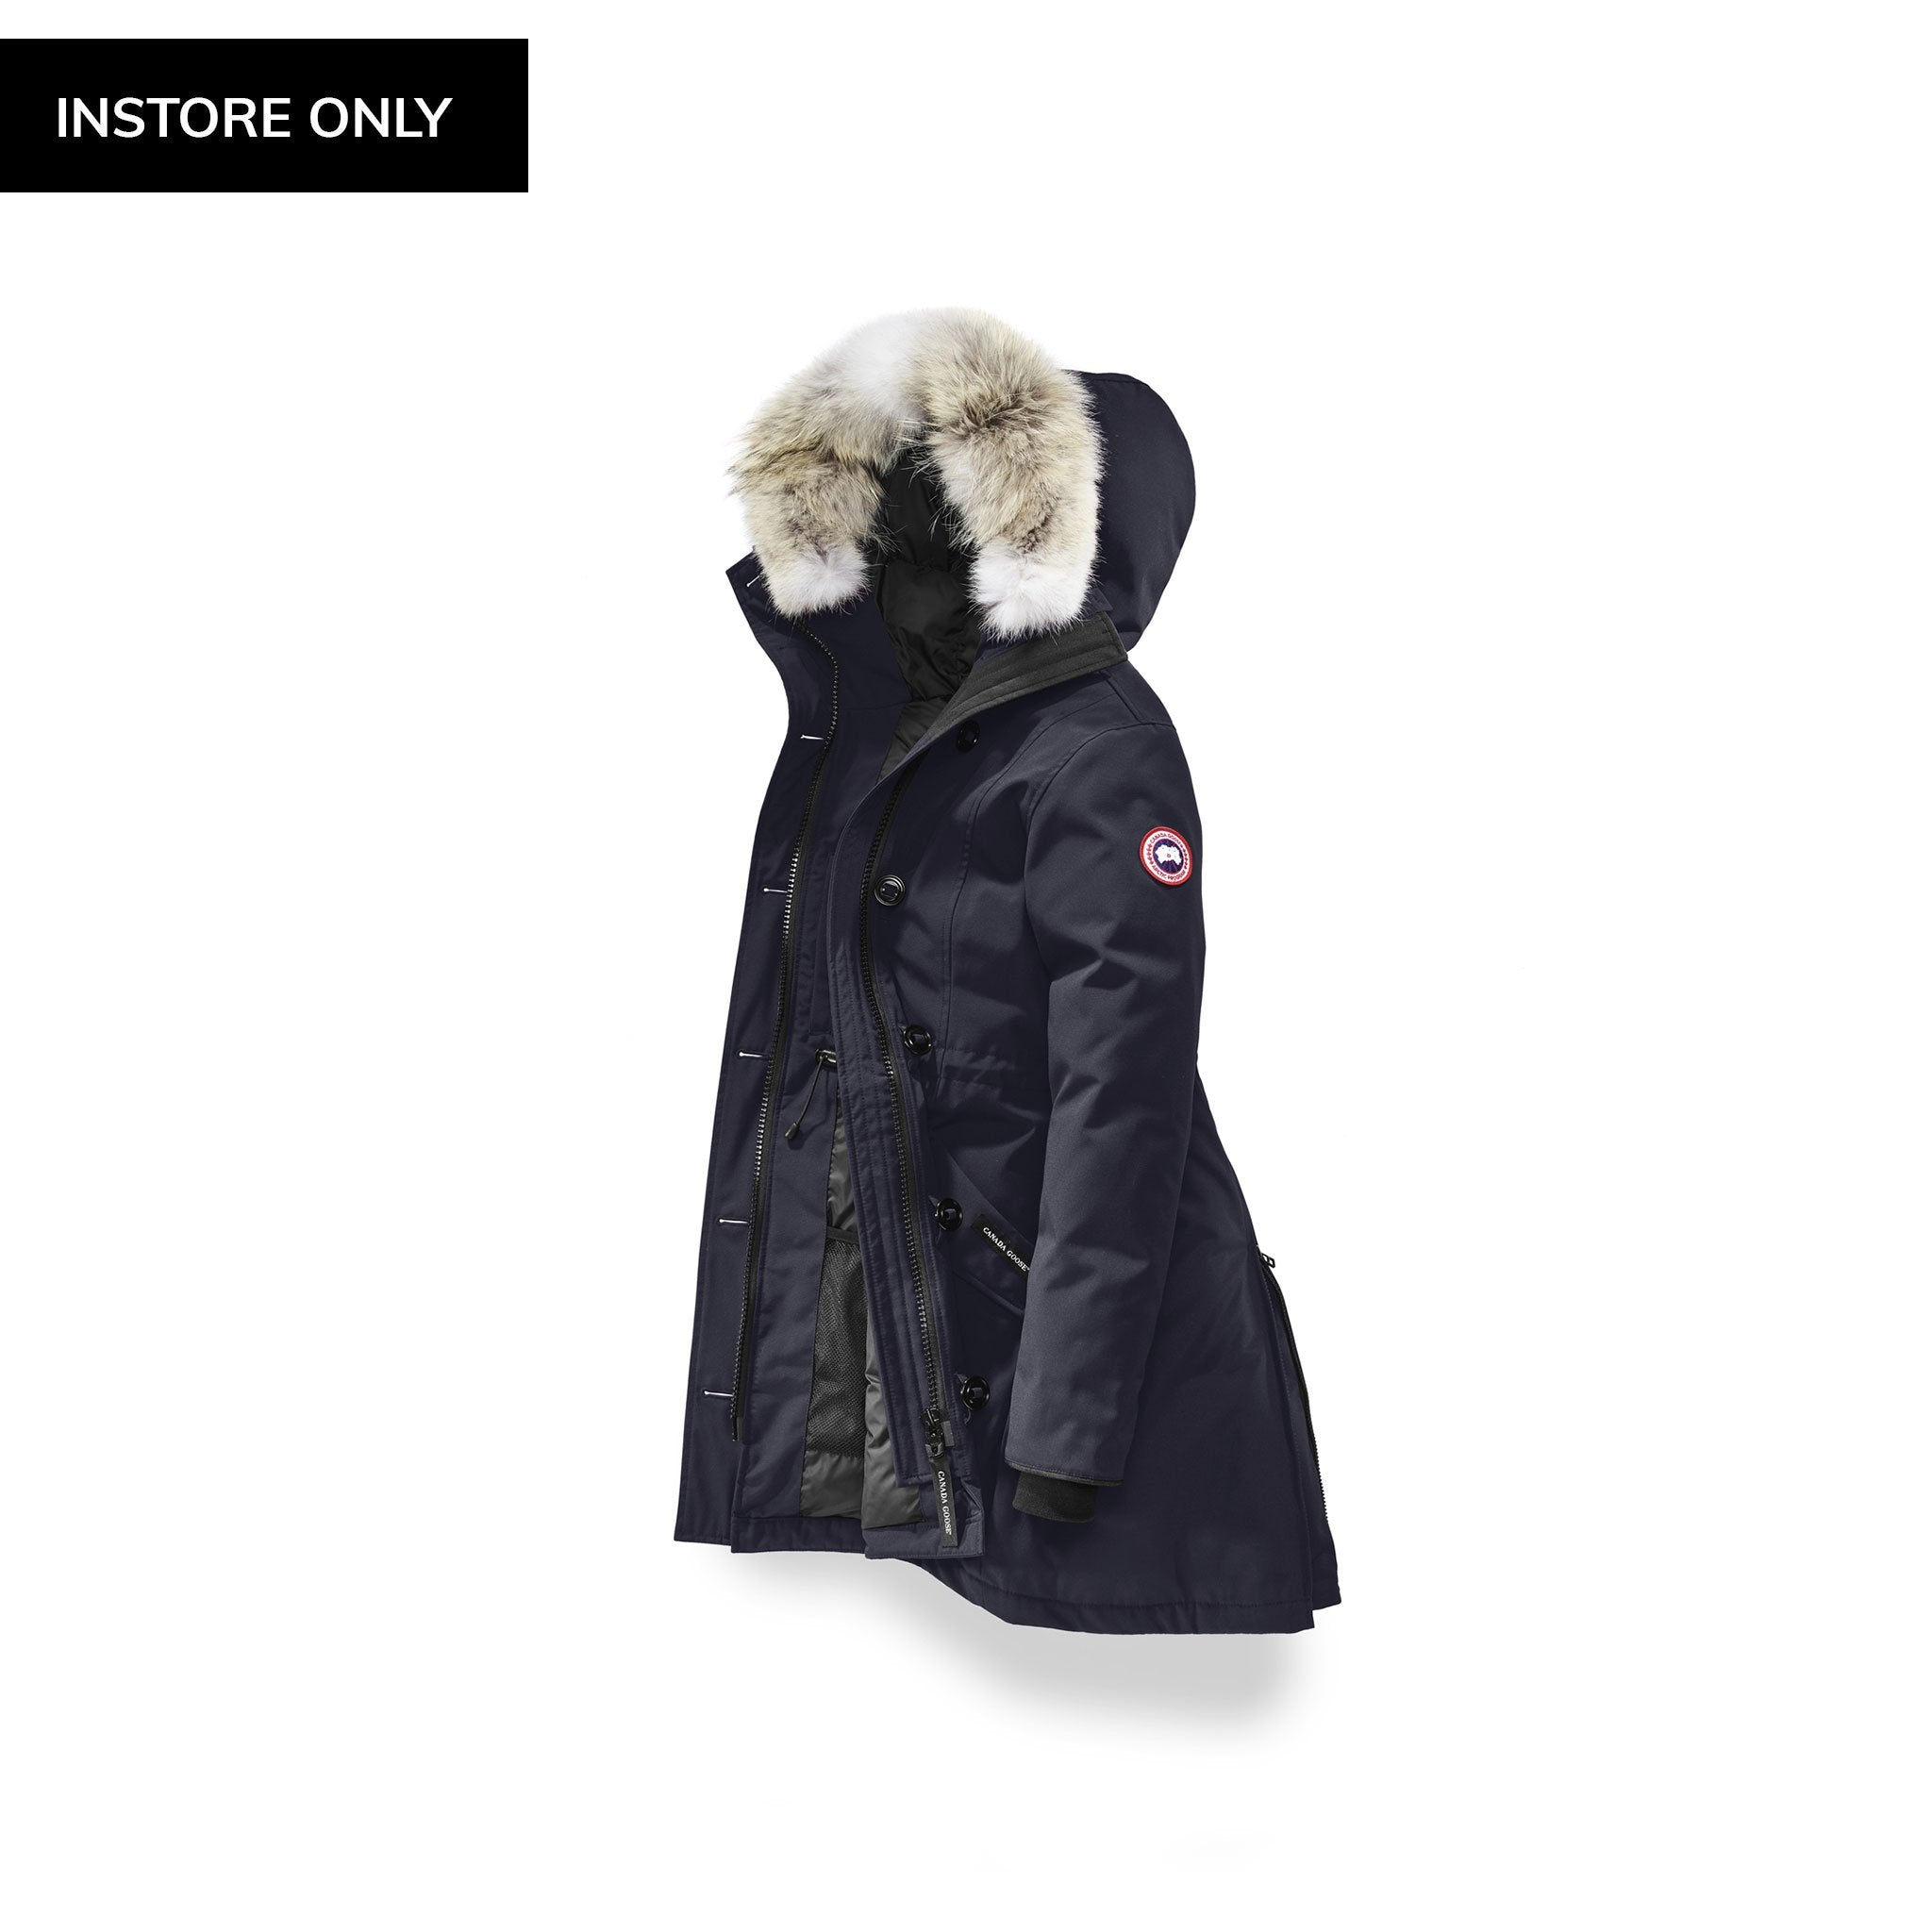 Canada Goose Rossclair Parka - Women s - Alpine Start Outfitters 6ac42f2a7b